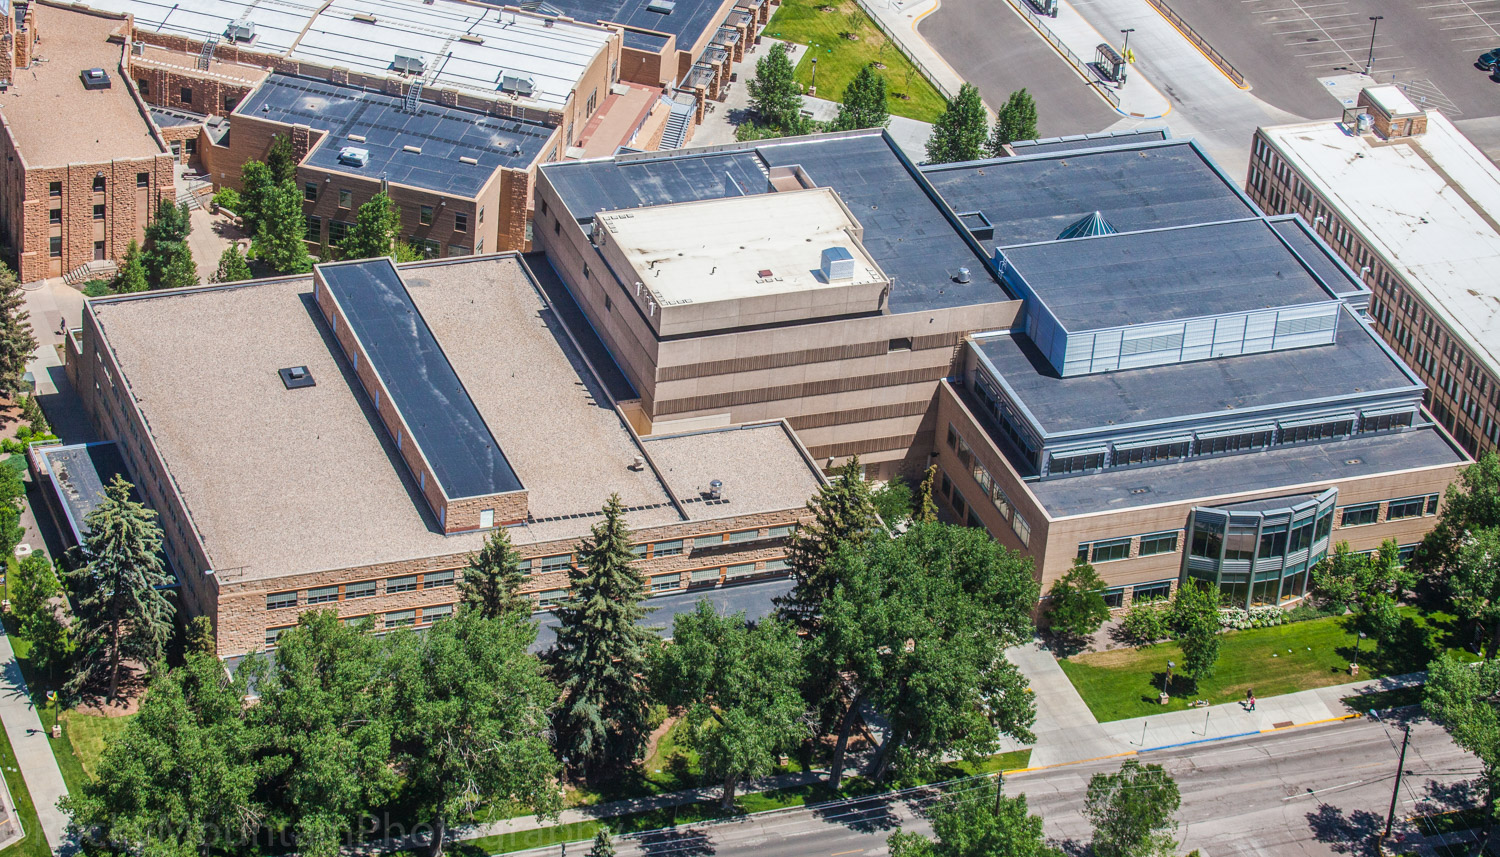 University of Wyoming Coe Library Aerial